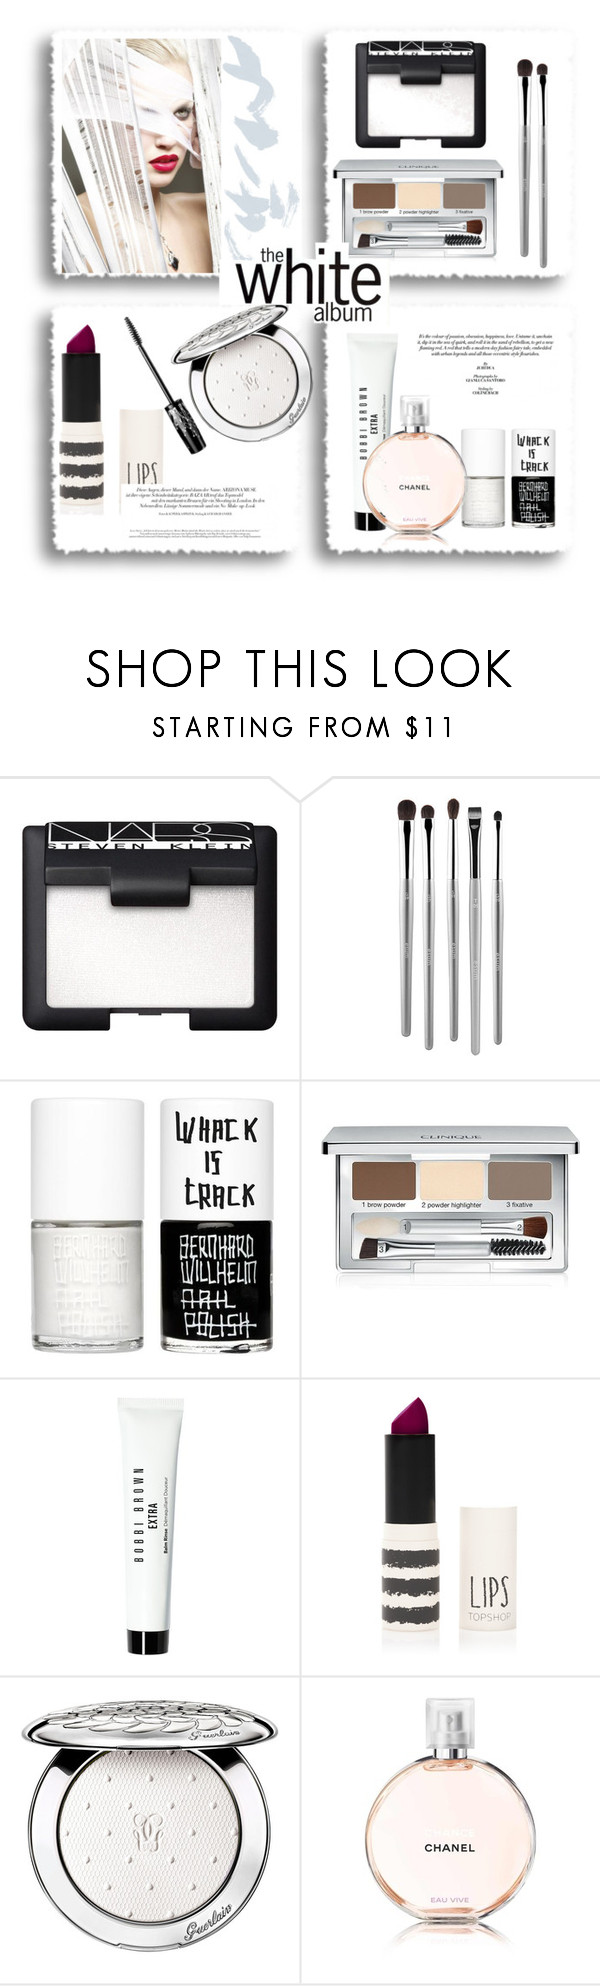 """""""The white album..."""" by gul07 ❤ liked on Polyvore featuring beauty, NARS Cosmetics, esum, Uslu Airlines, Clinique, Bobbi Brown Cosmetics, Topshop and Guerlain"""